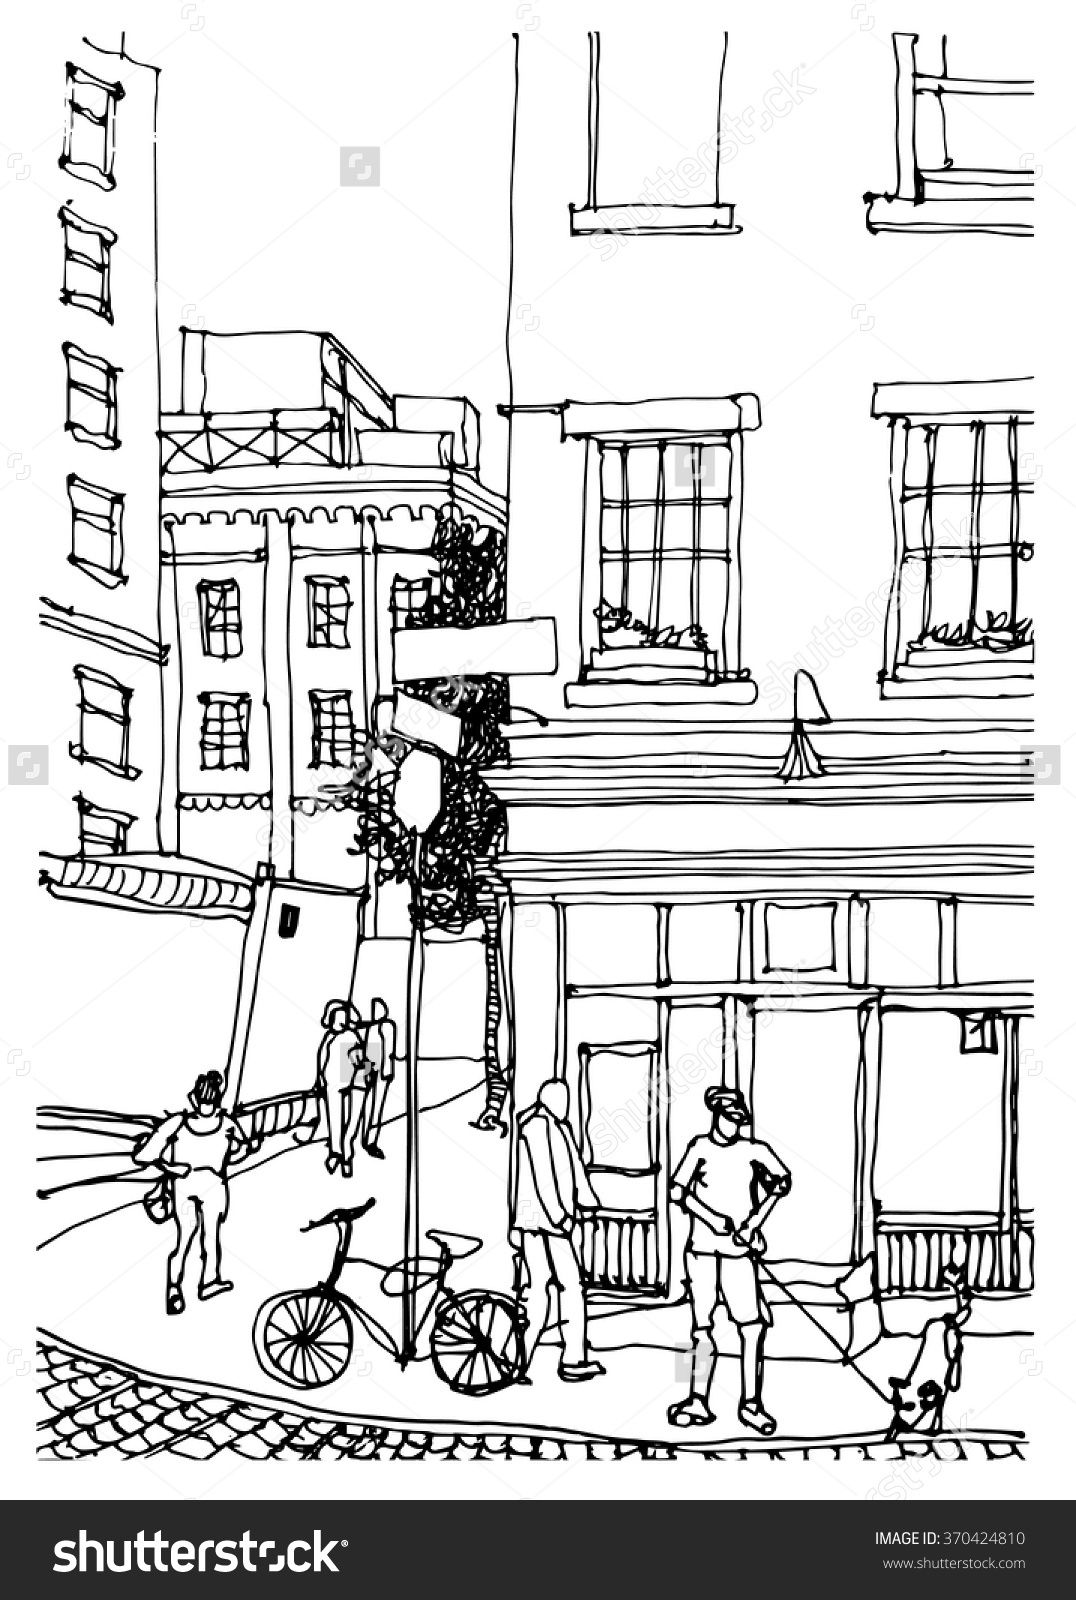 Scene Street Illustration Hand Drawn Ink Line Sketch New York